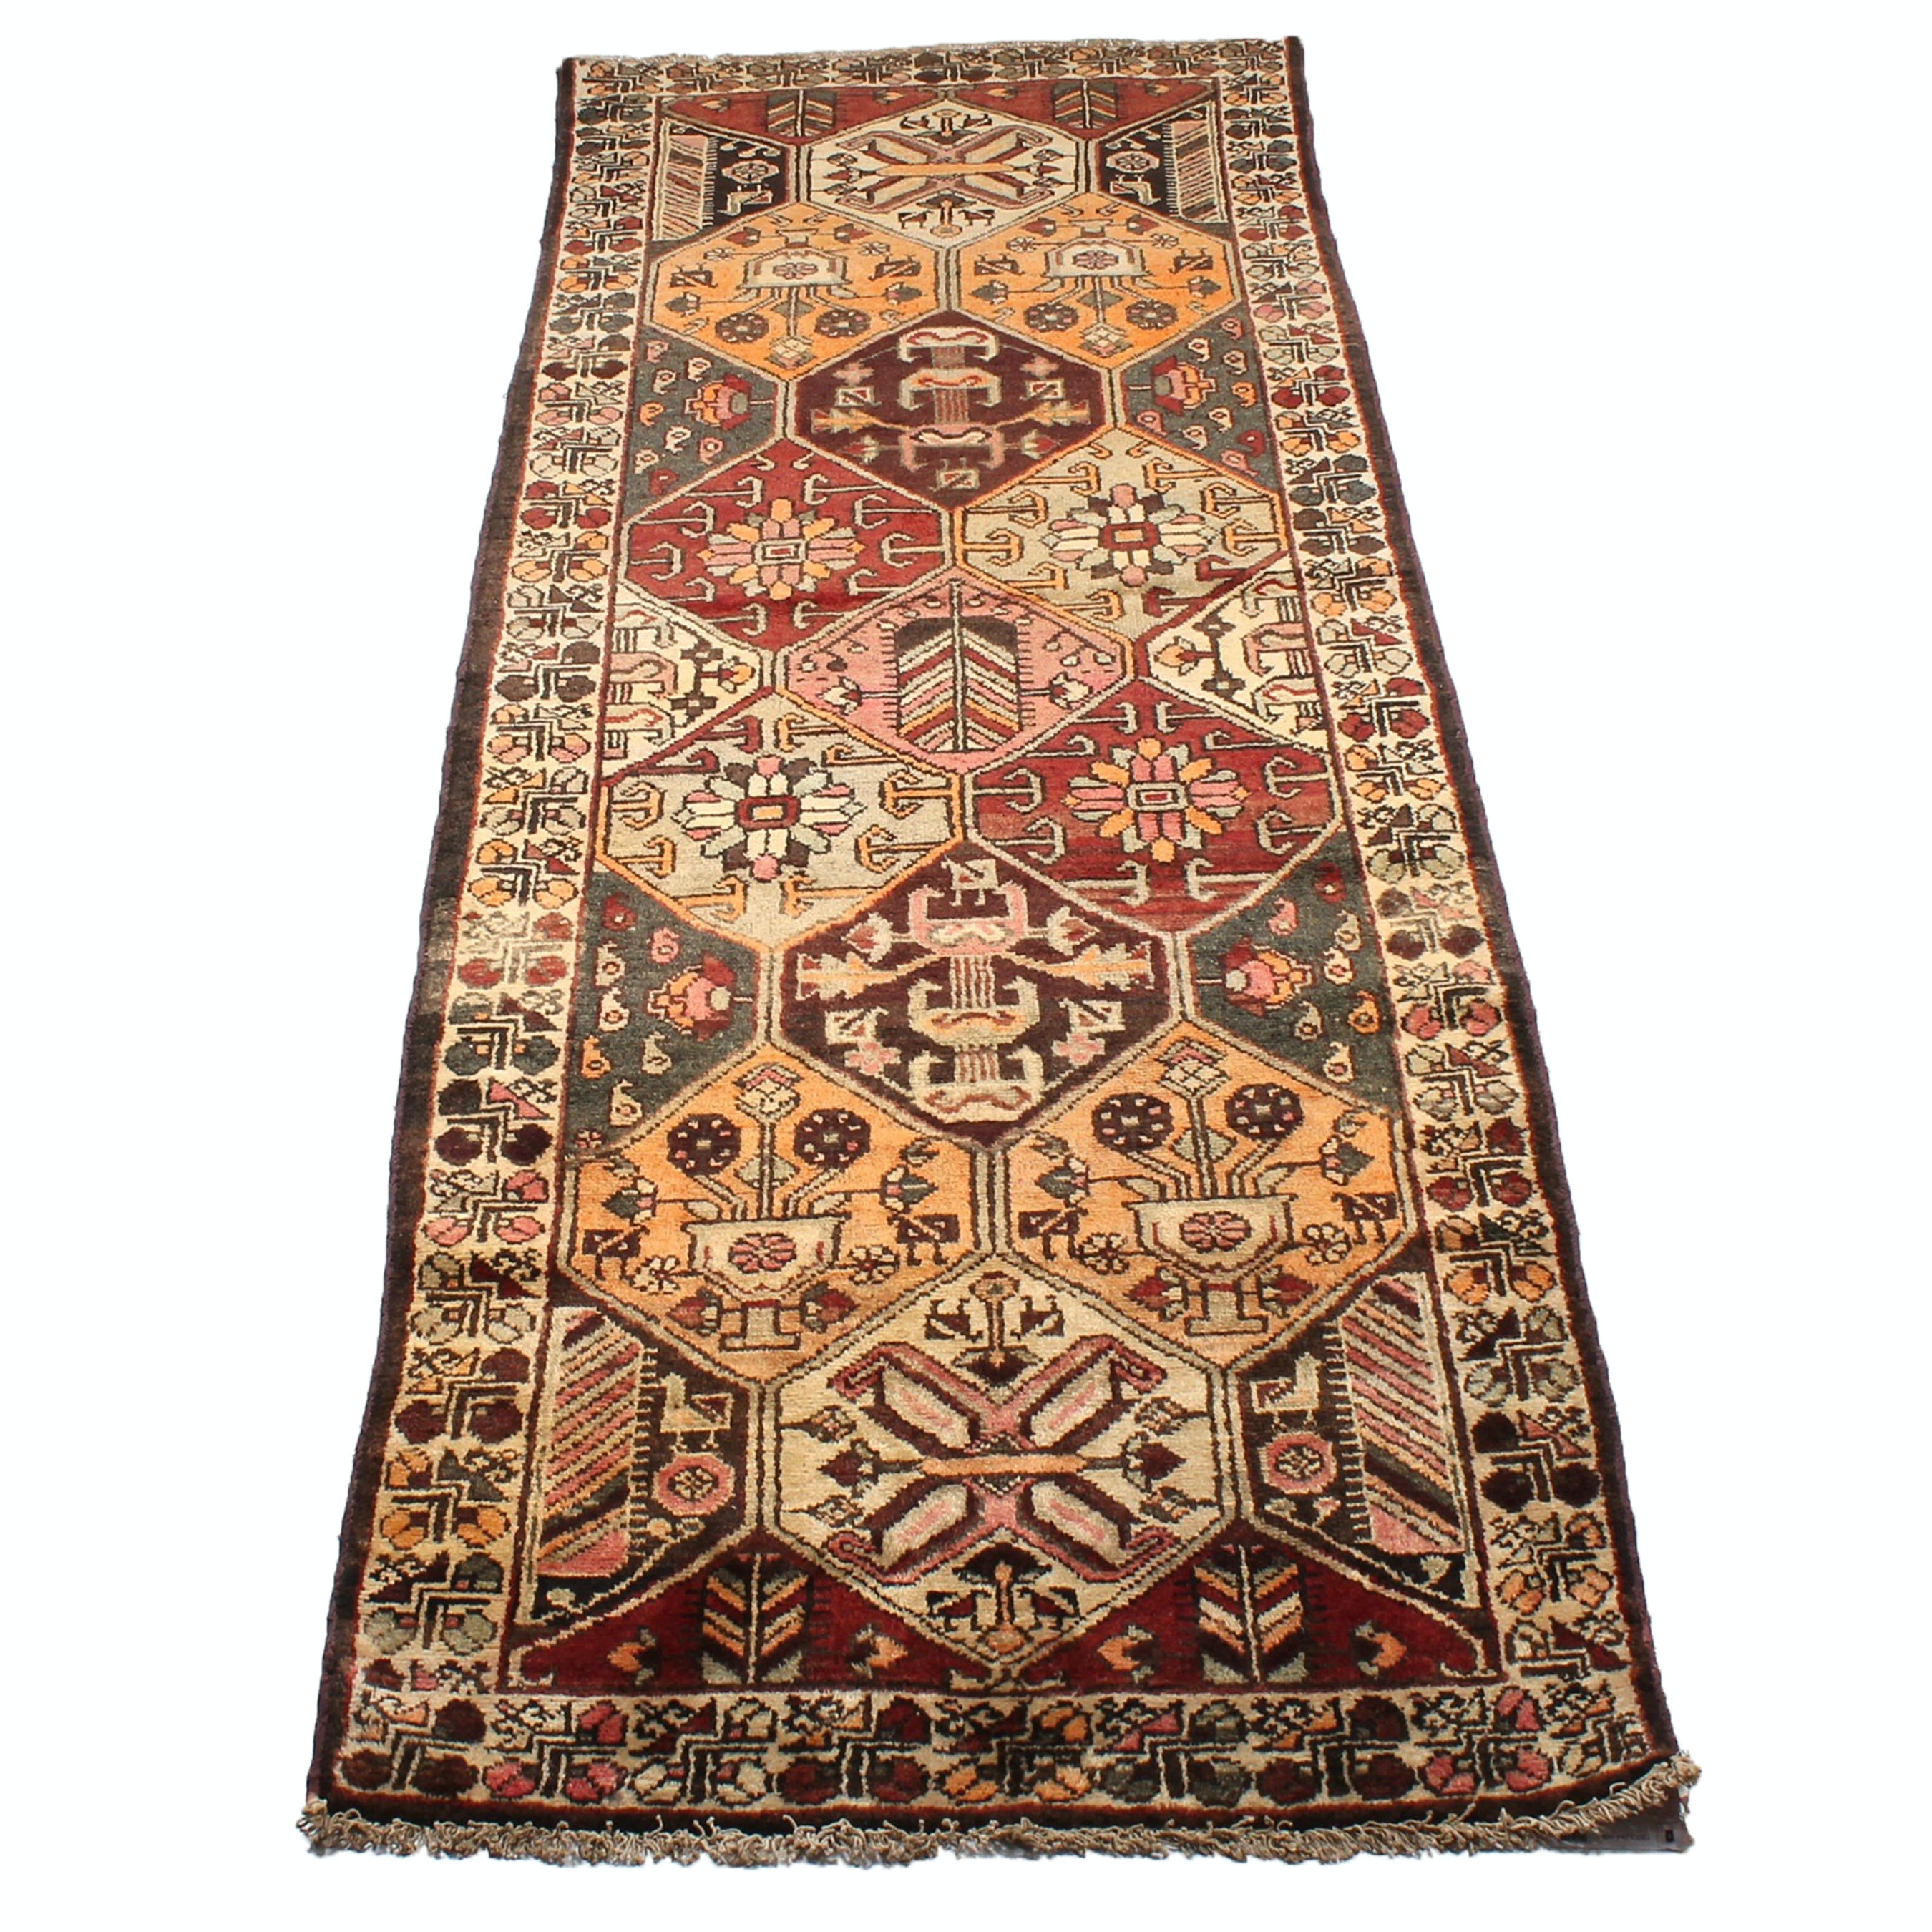 3' x 10' Vintage Hand-Knotted Persian Bakhtiari Runner Rug